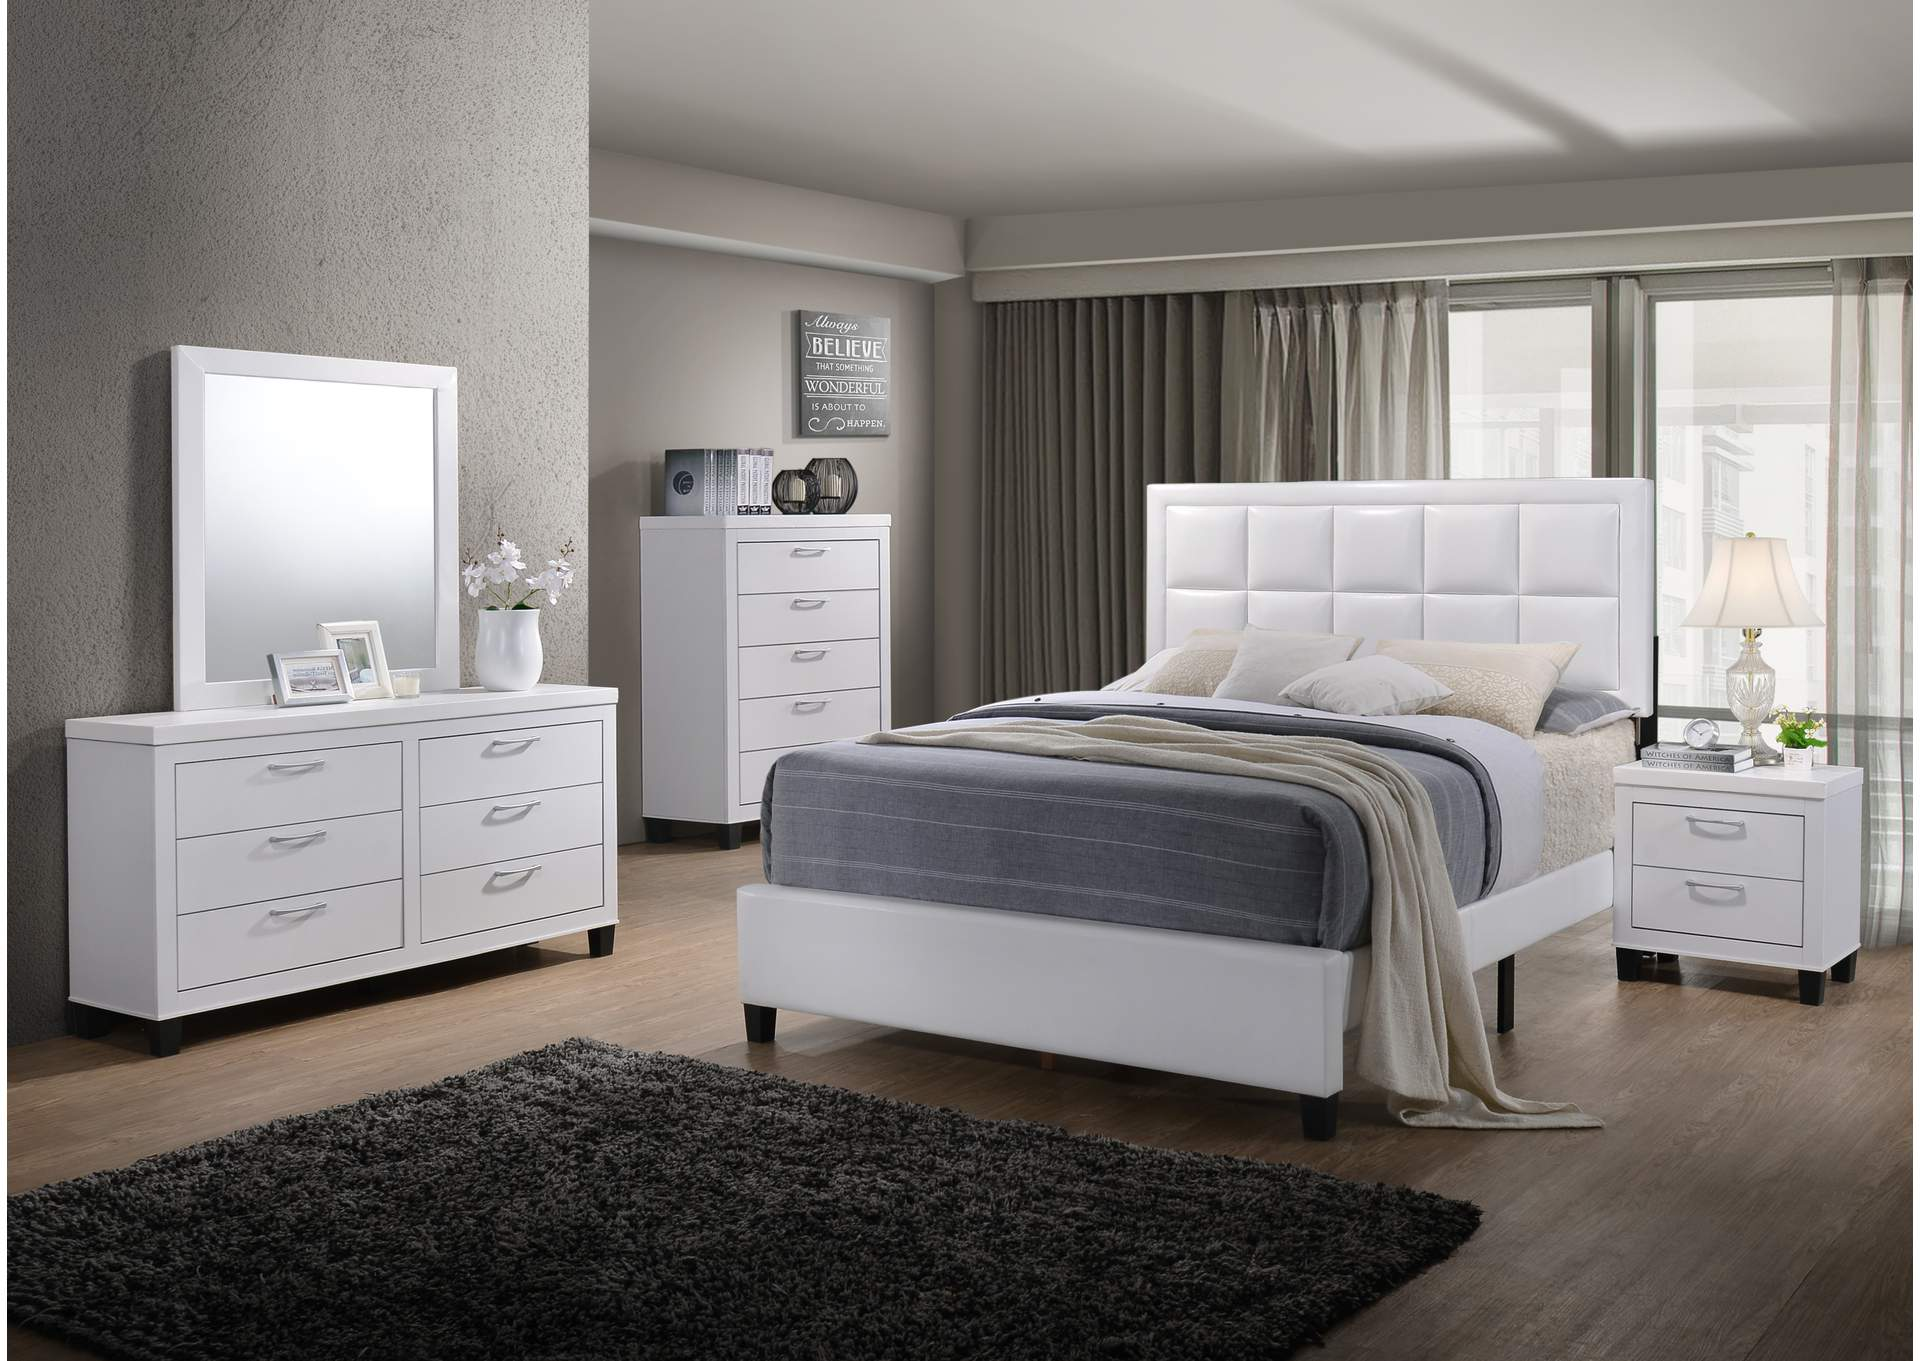 Culverbach White Panel Queen 4 Piece Bedroom Set W/ Chest, Dresser & Mirror,Global Trading